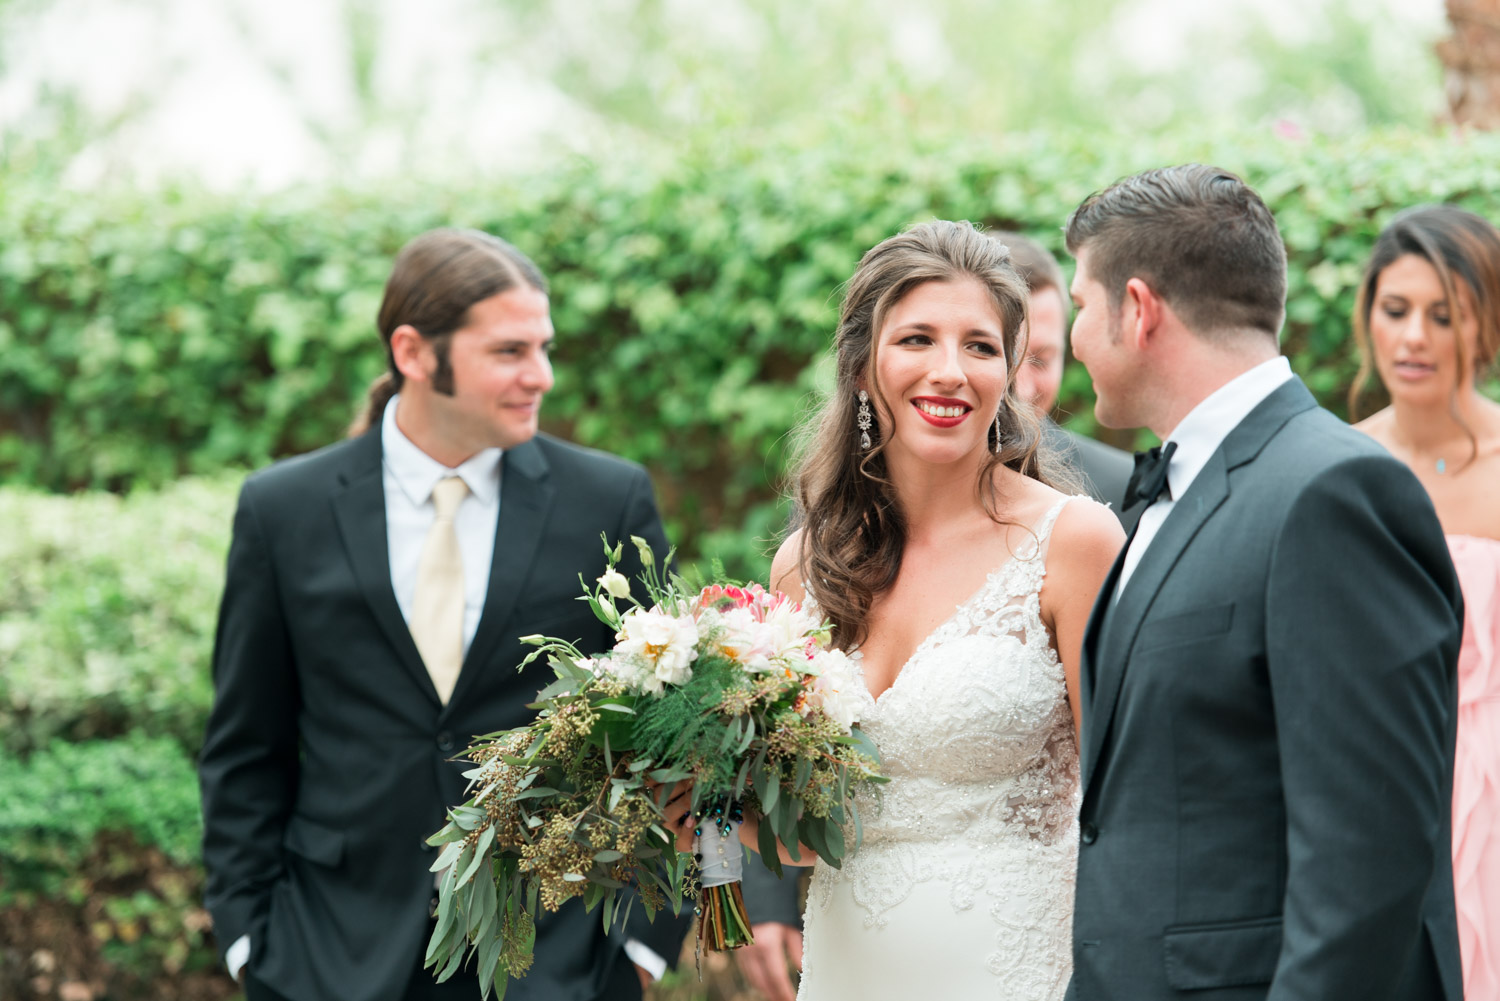 Bridal party portraits at Desert Ridge in Palm Springs, Cavin Elizabeth Photography